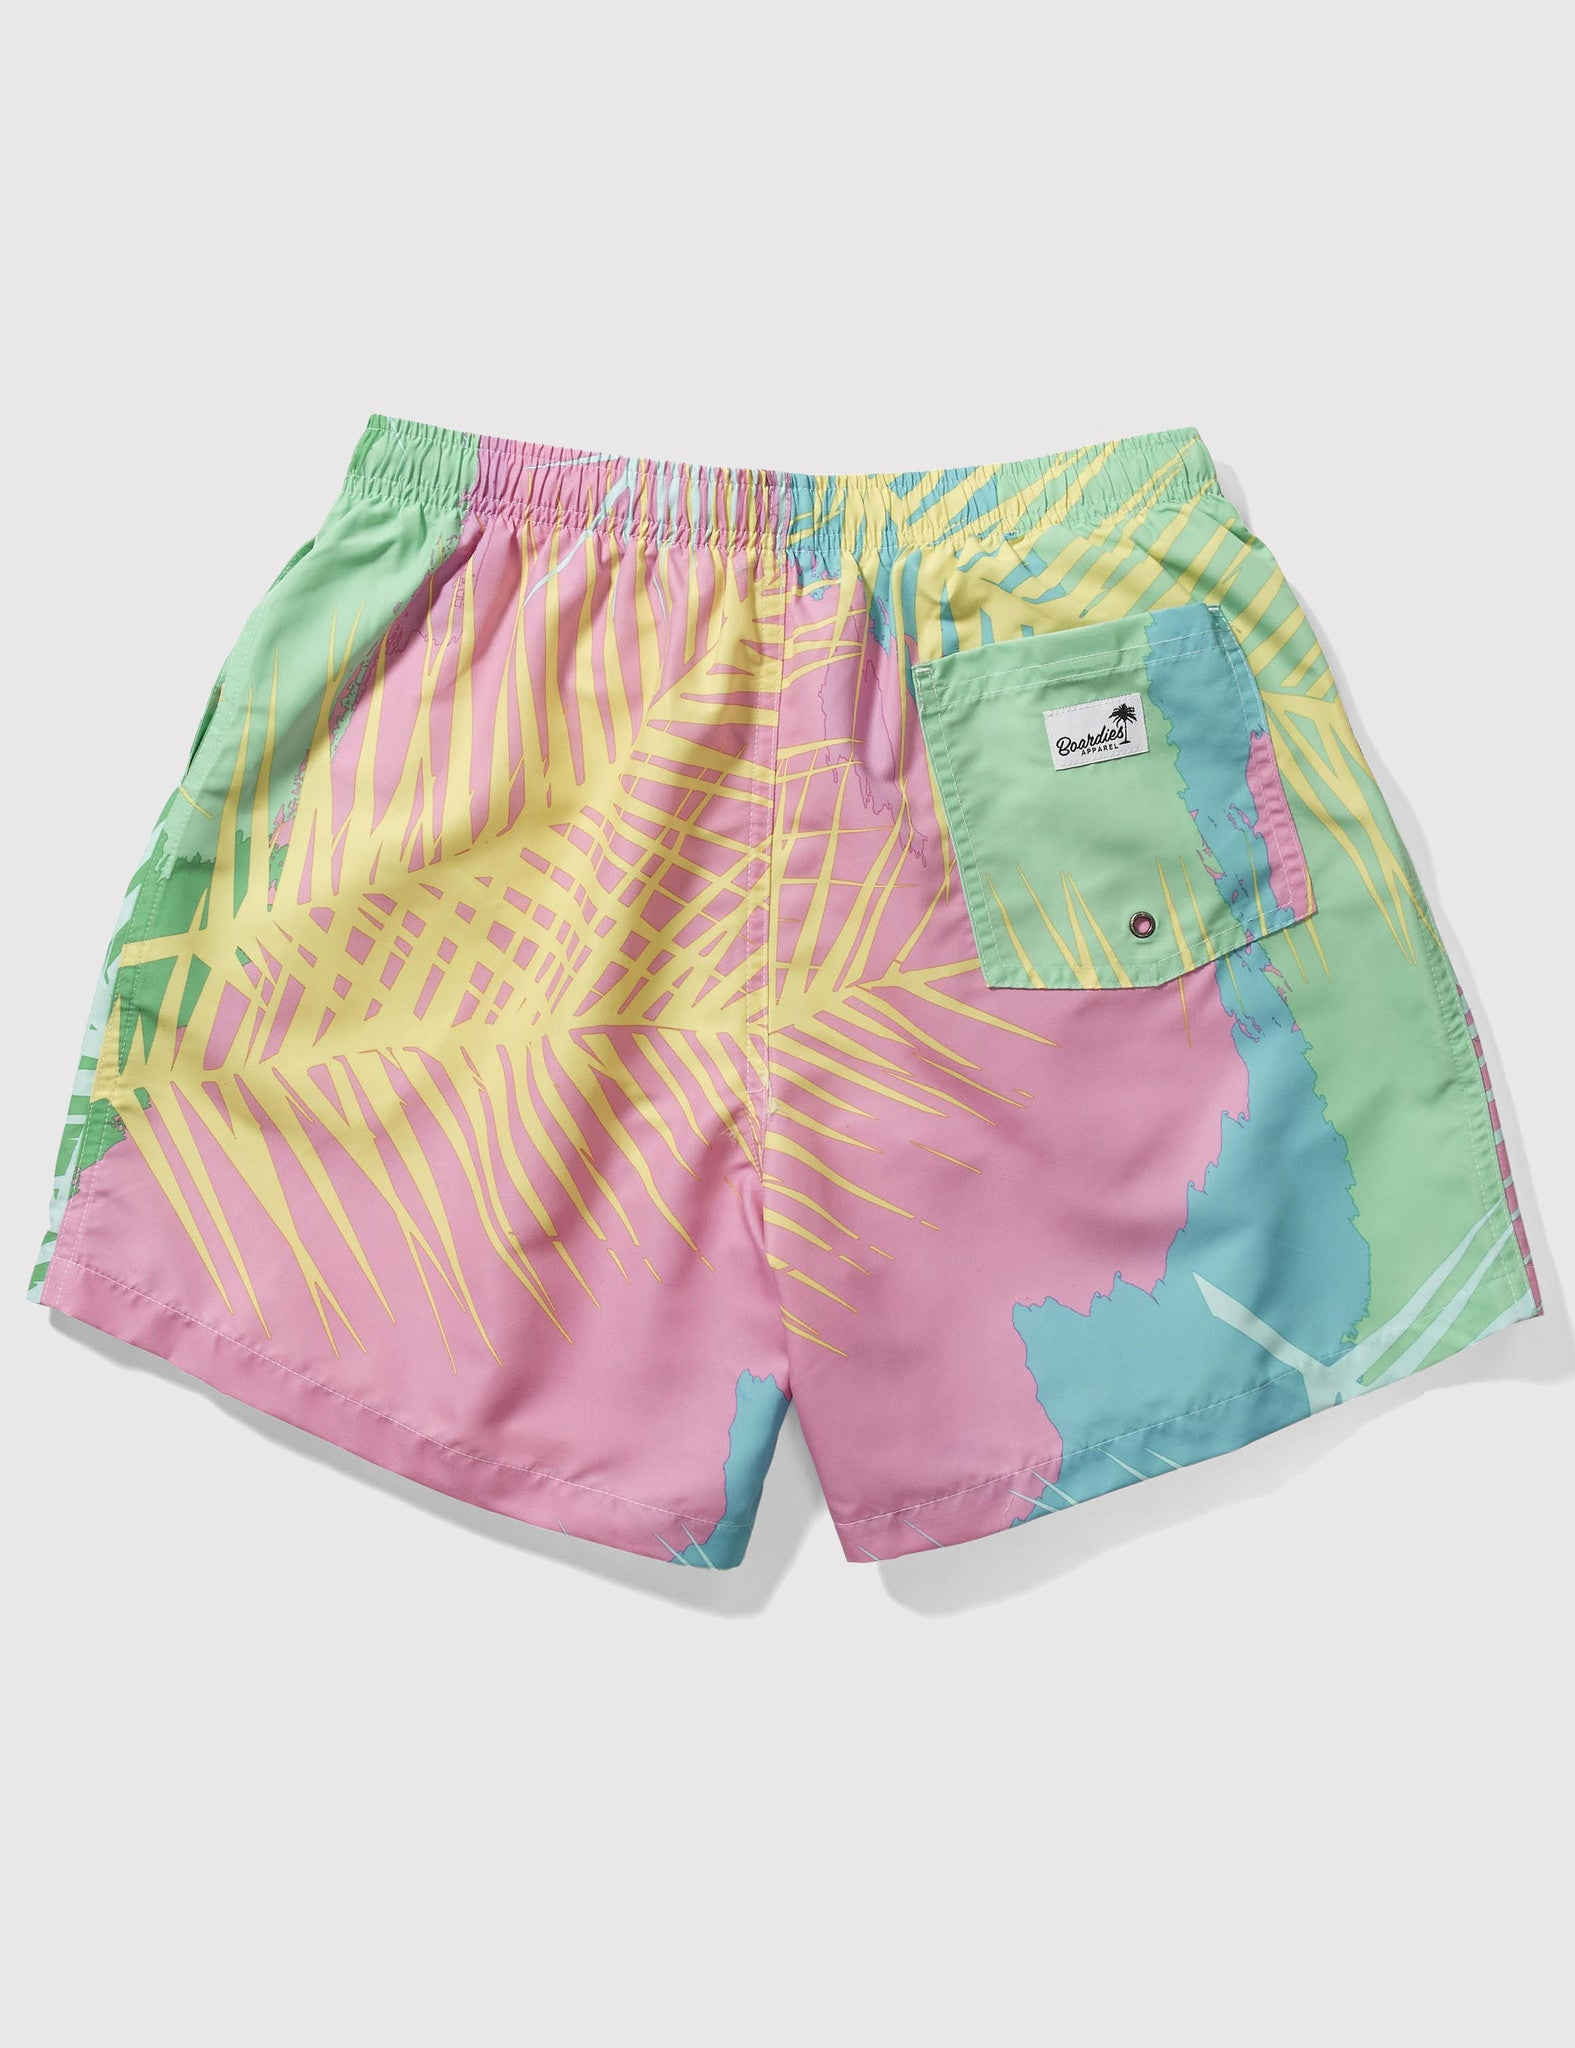 Boardies Tropicano Drawstring Swim Shorts (Short Length) - Pink/Green